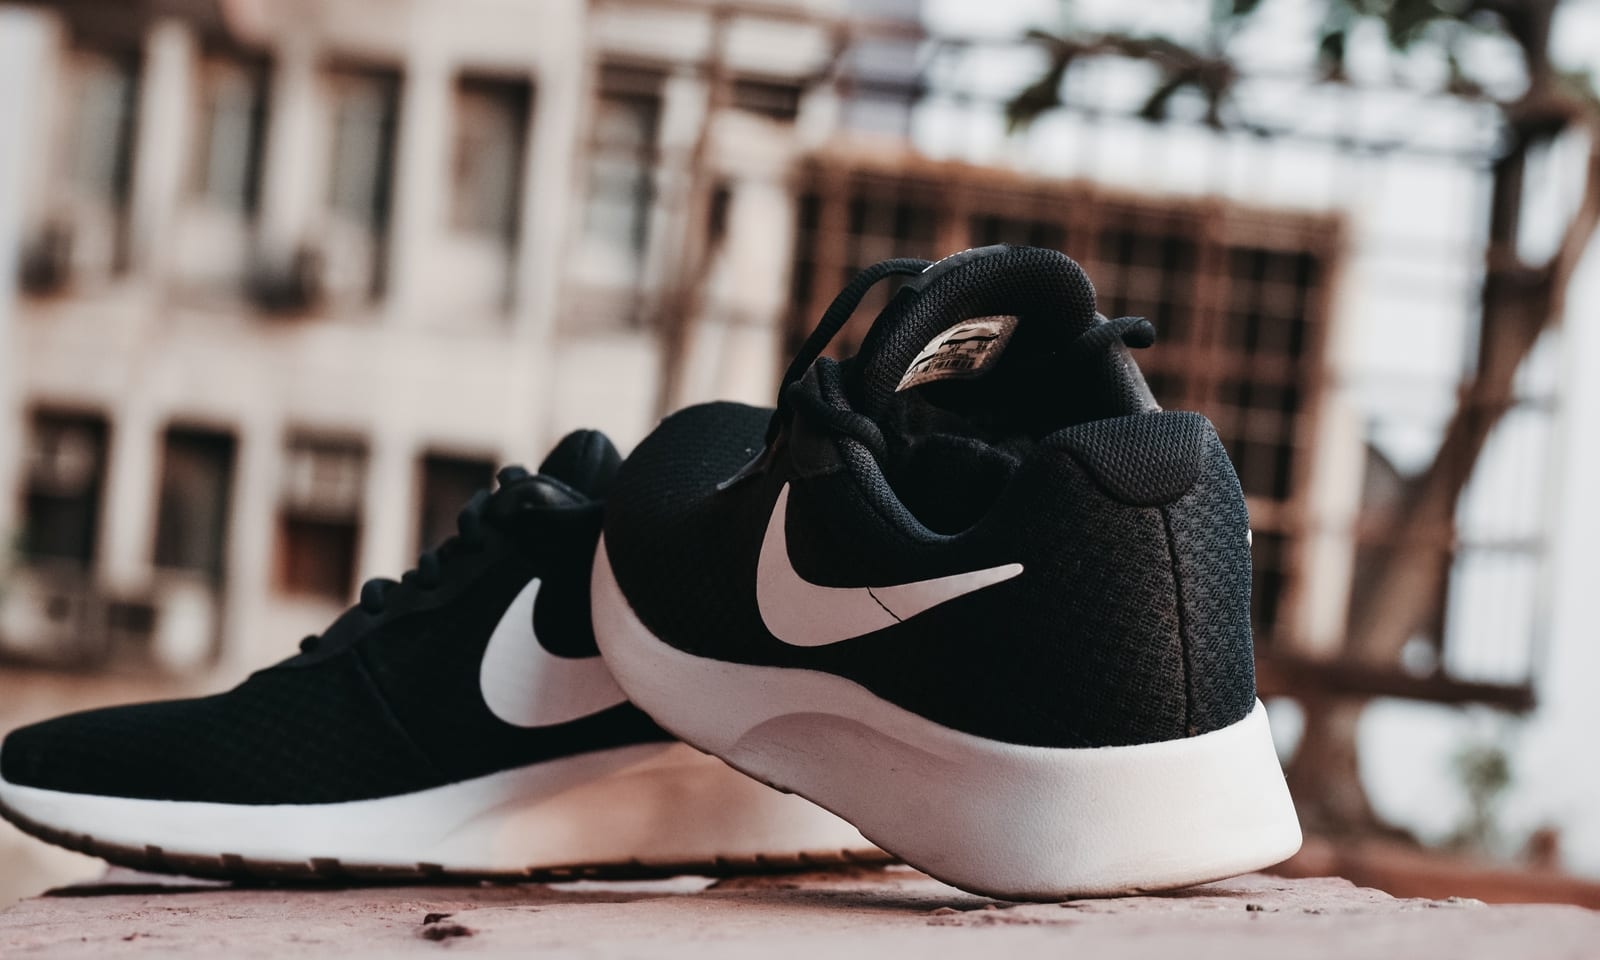 best nikes for ankle support